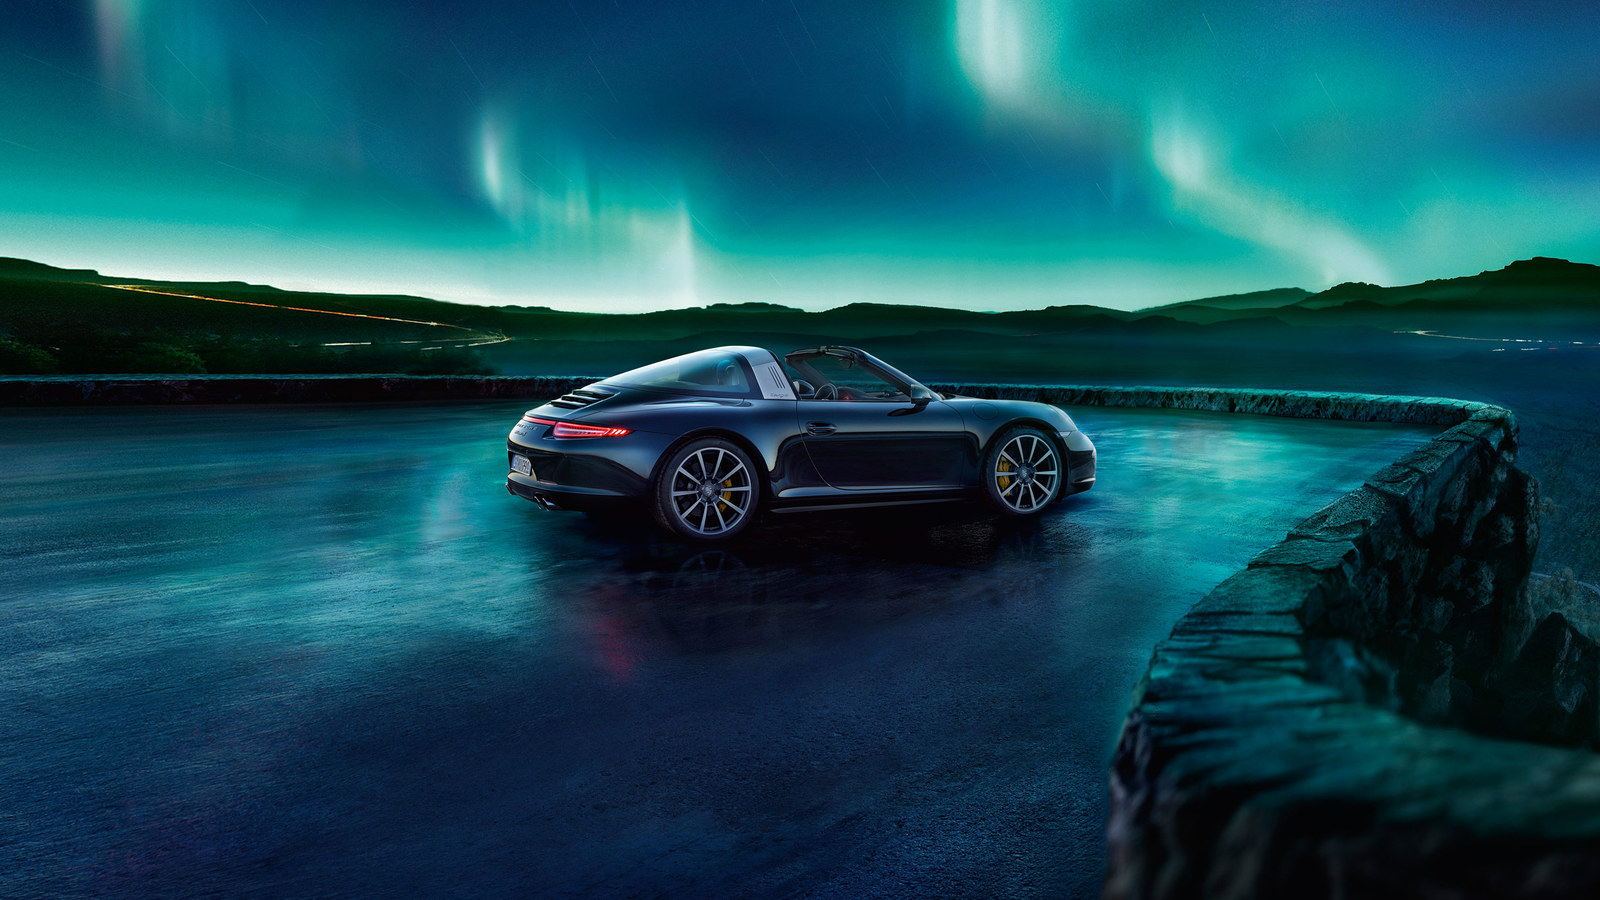 3d Dolphin Wallpaper Download Porsche 911 Carrera Targa 4s 991 Specs 2014 2015